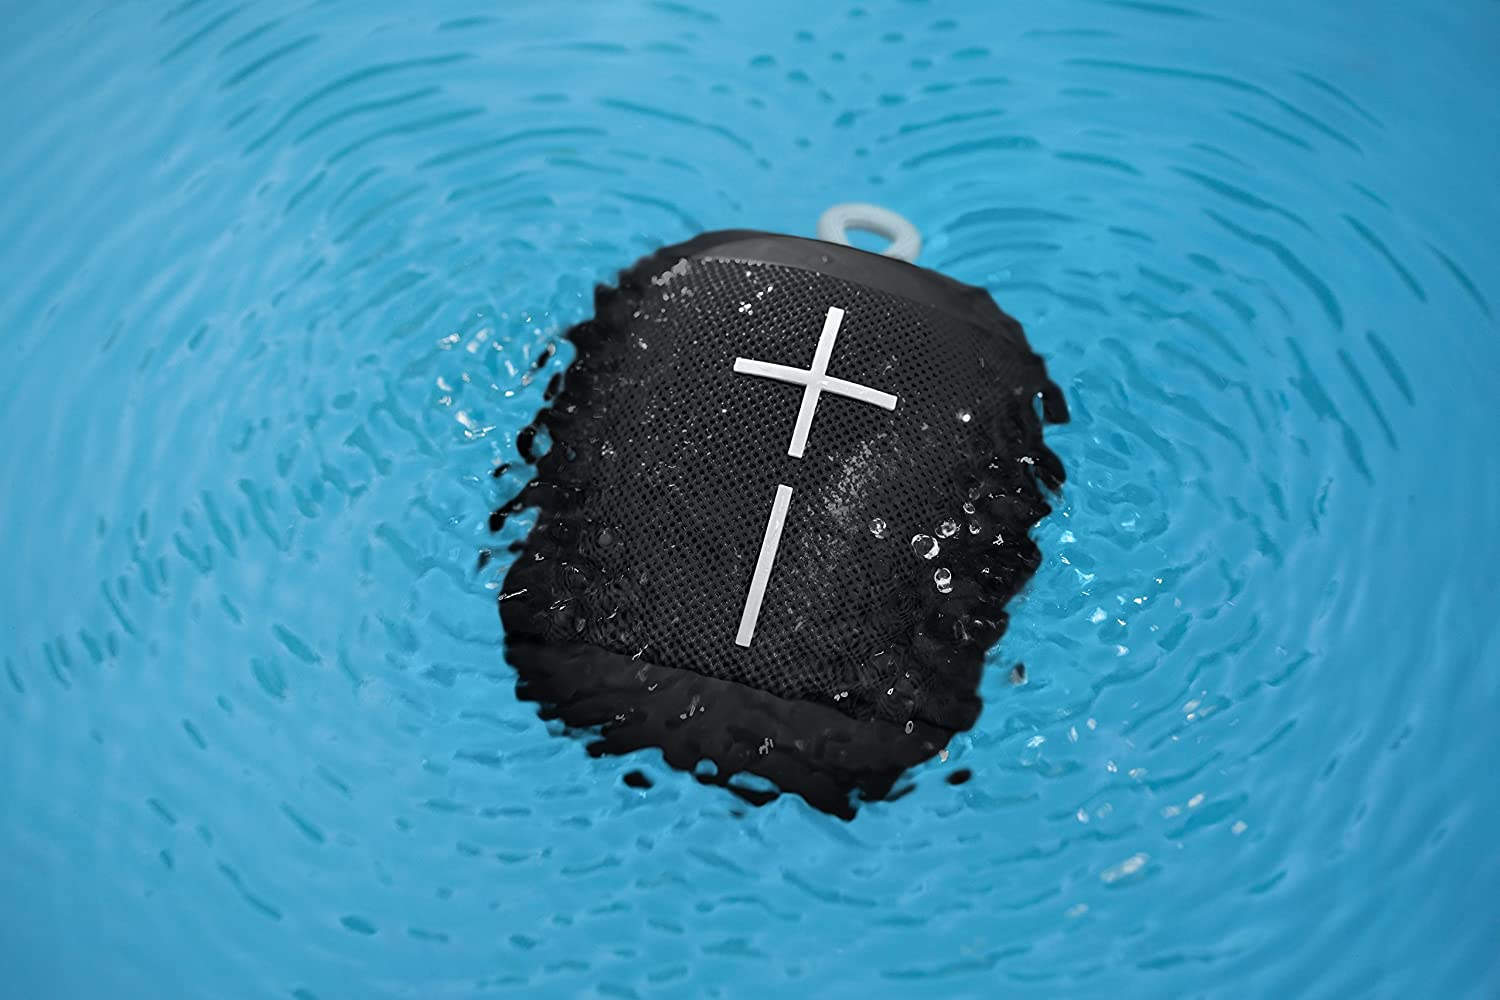 Ultimate Ears WONDERBOOM Portable Waterproof